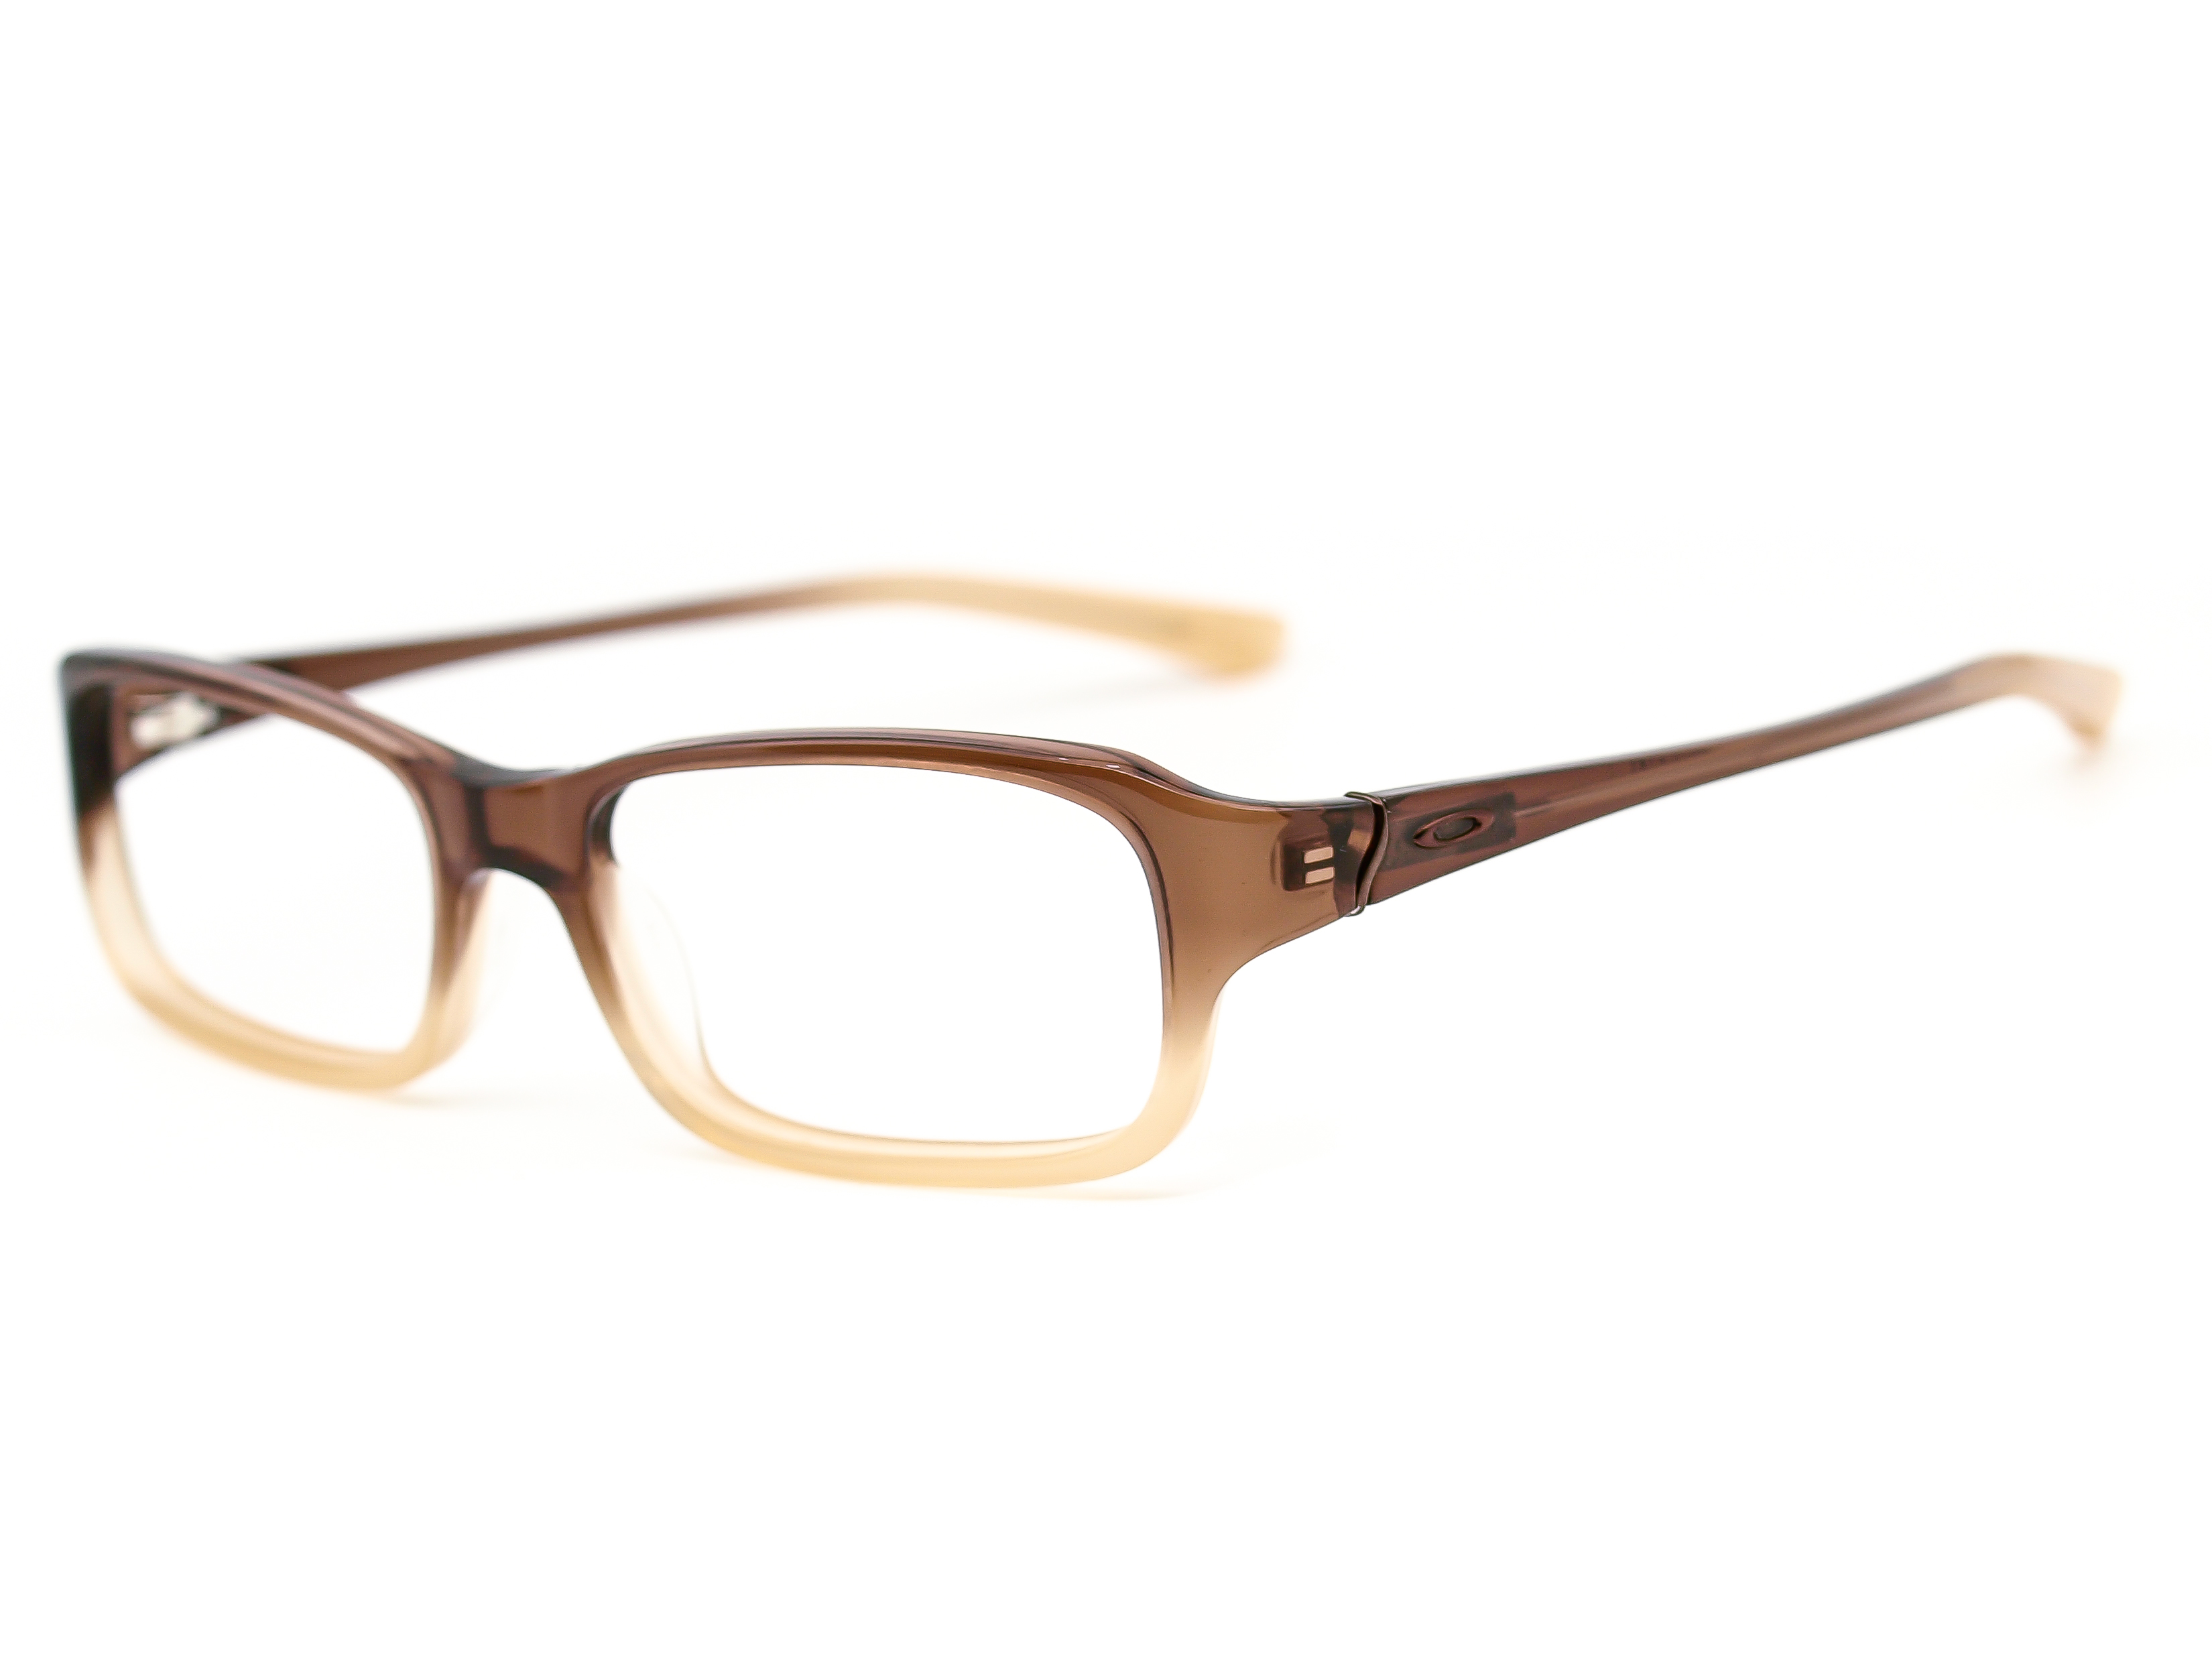 Oakley Heist OX1040-0152 Iced Latte  Sunglasses Frame Only